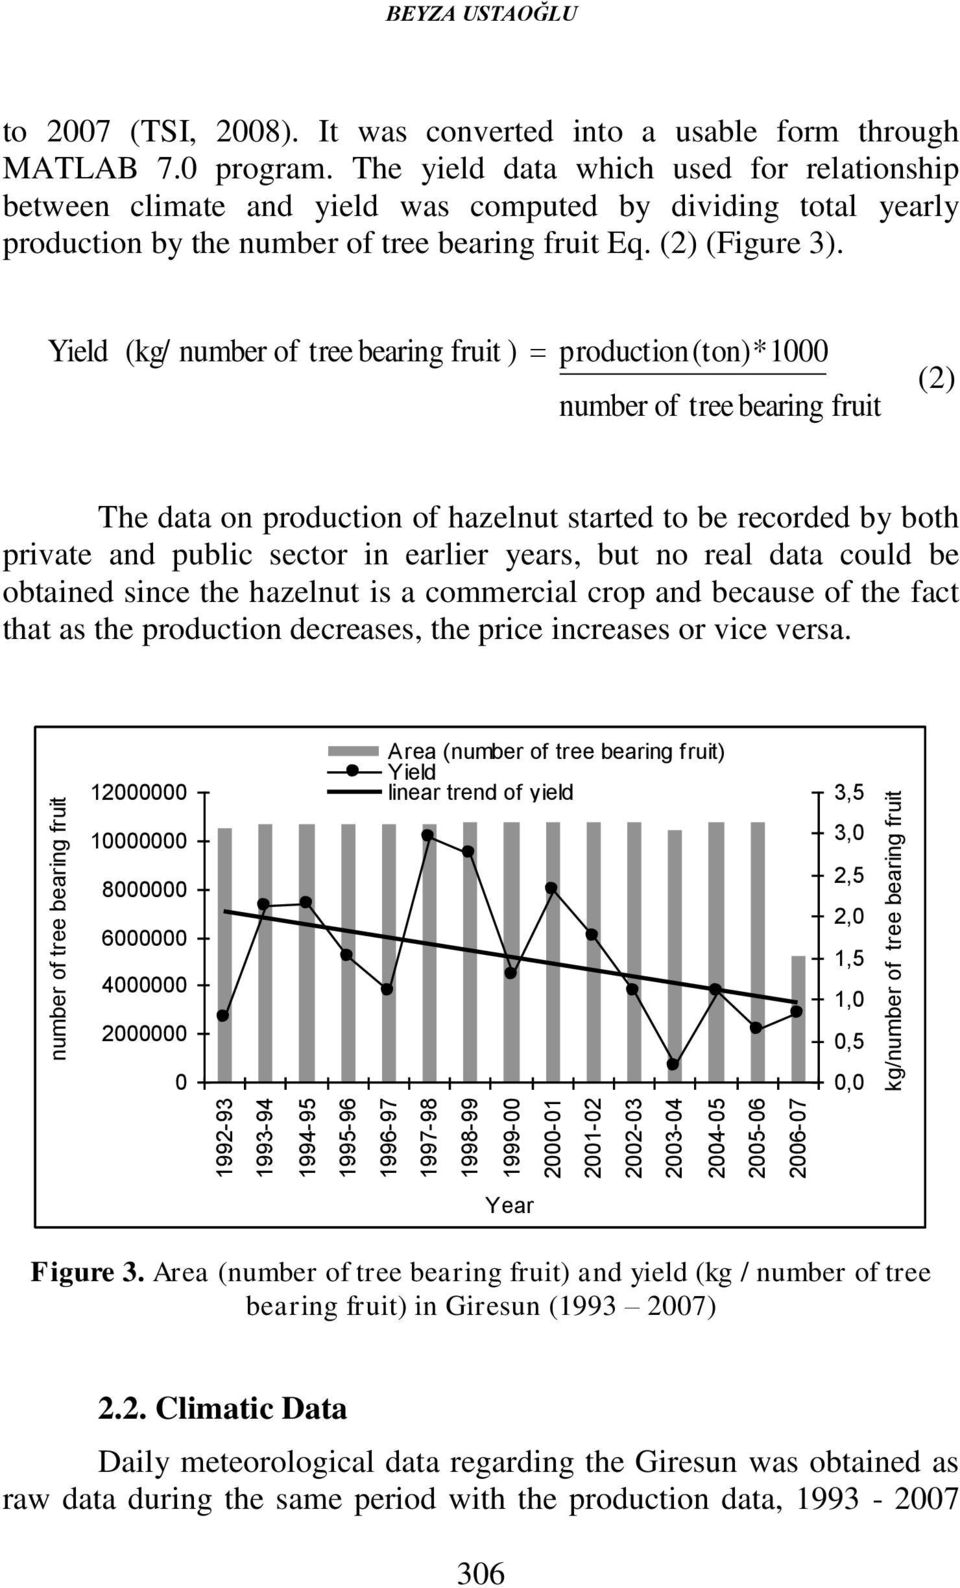 The yield data which used for relationship between climate and yield was computed by dividing total yearly production by the number of tree bearing fruit Eq. (2) (Figure 3).